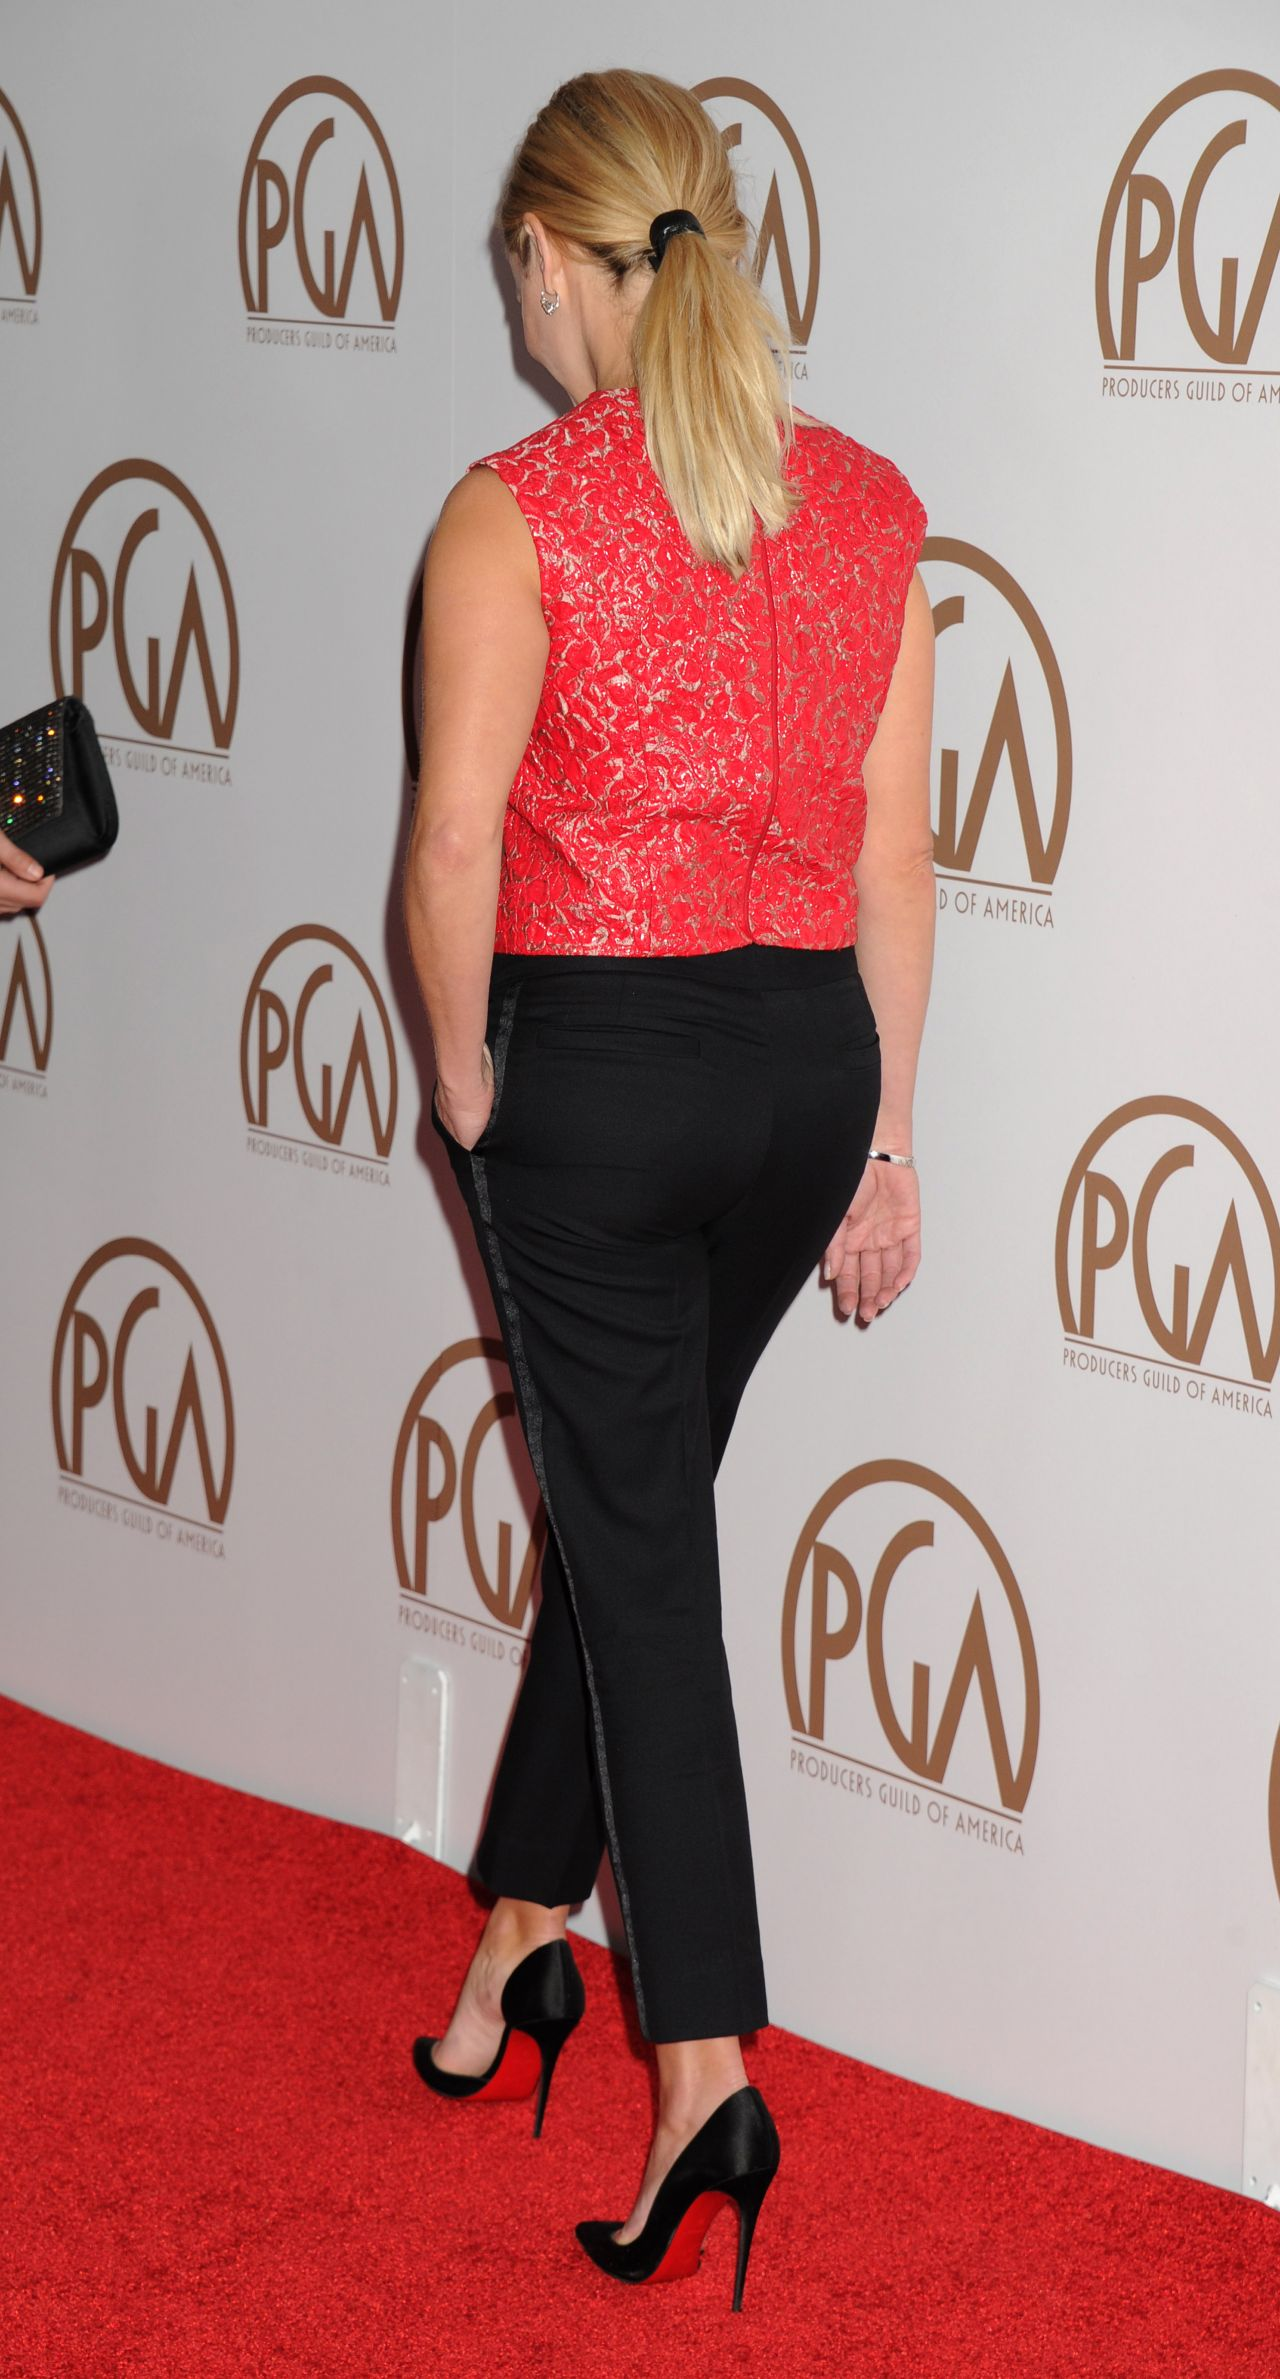 reese-witherspoon-2015-producers-guild-awards-in-los-angeles_2